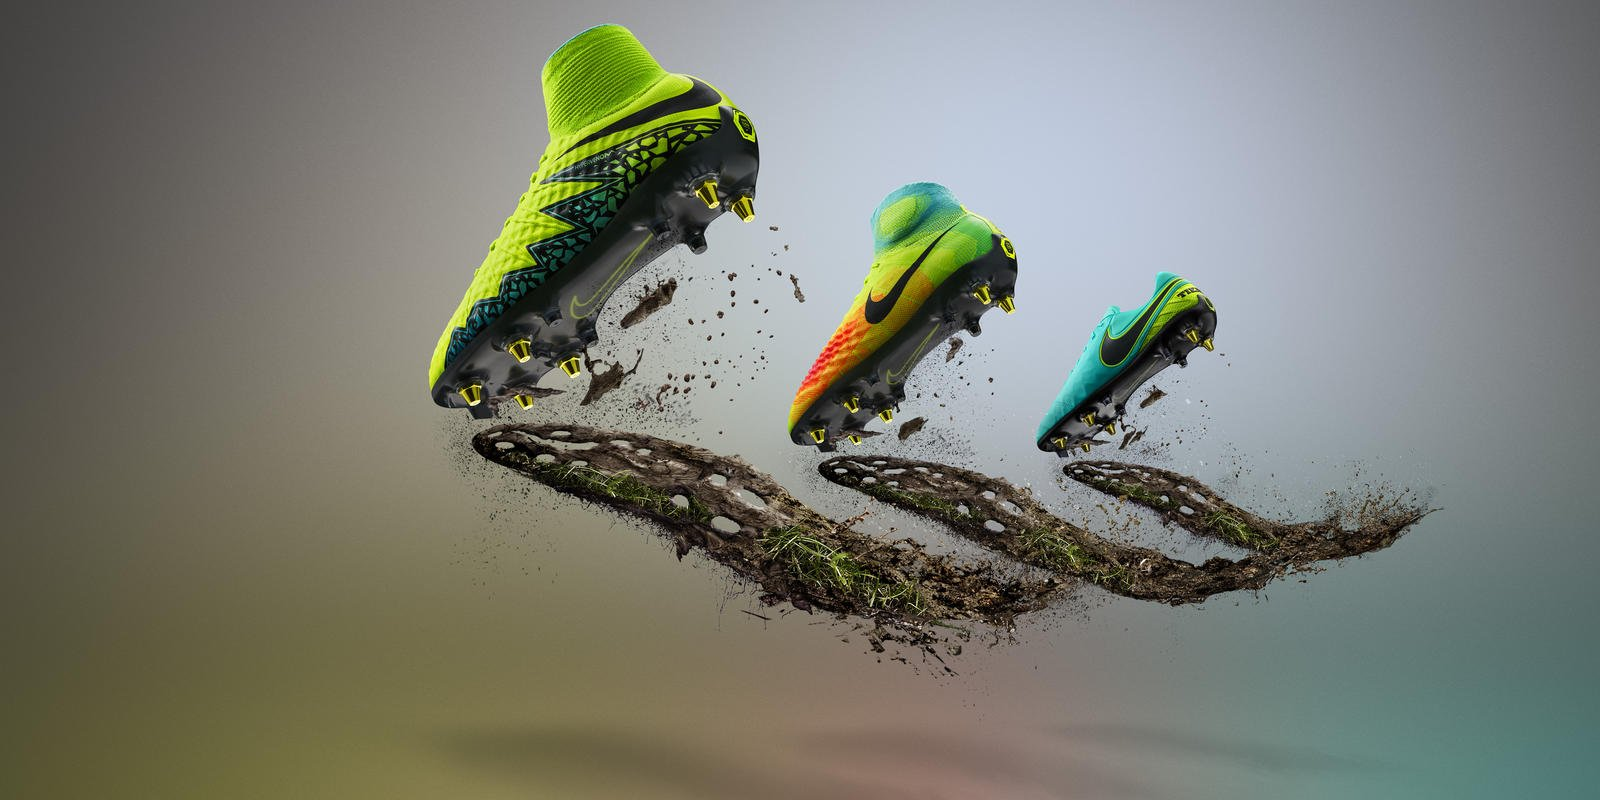 Nike Material Recovery Innovation Challenge